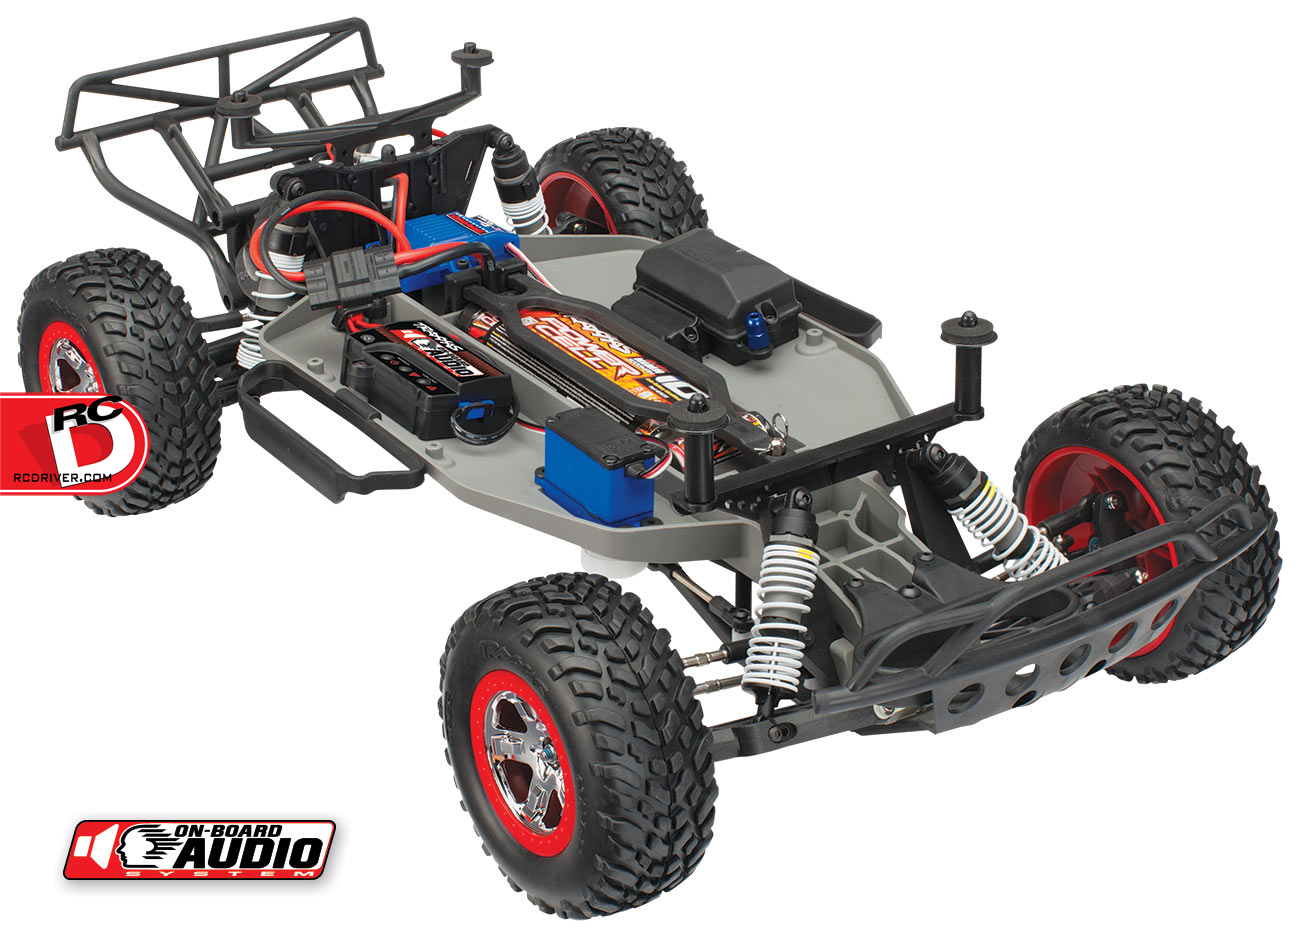 rc truck news with Traxxas Slash Pro 2wd Short Course Truck With On Board Audio 3 Copy on Dig Big further 2017 Ford Raptor Color Options as well Nouveautes Lego Technic 2017 Visuels Officiels moreover Gmc k2500 colt seavers furthermore Lego Rc Land Rover Defender 90.